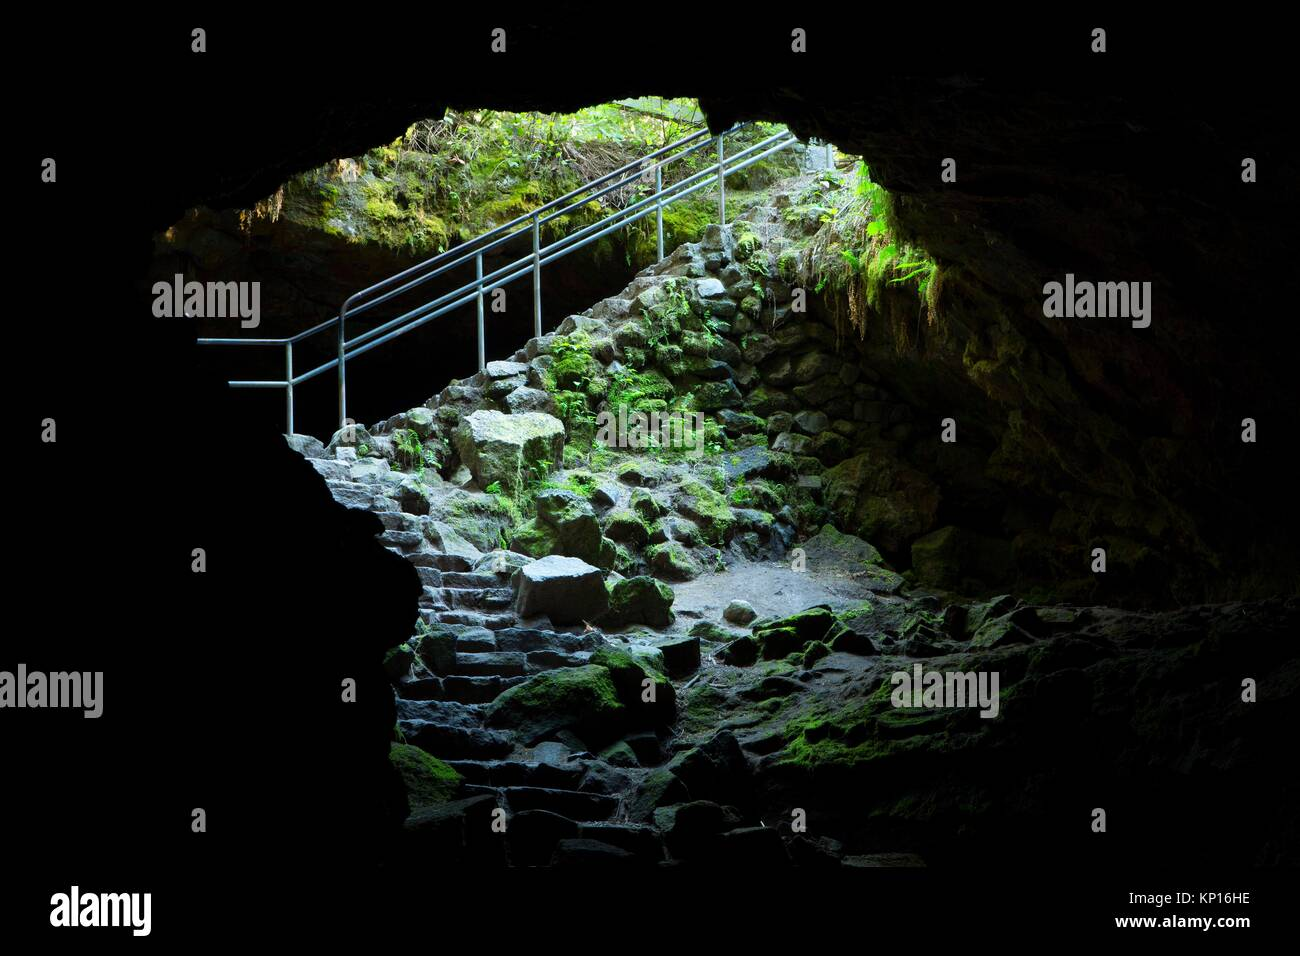 Ape Cave entrance, Mt St Helens National Volcanic Monument, Washington. - Stock Image